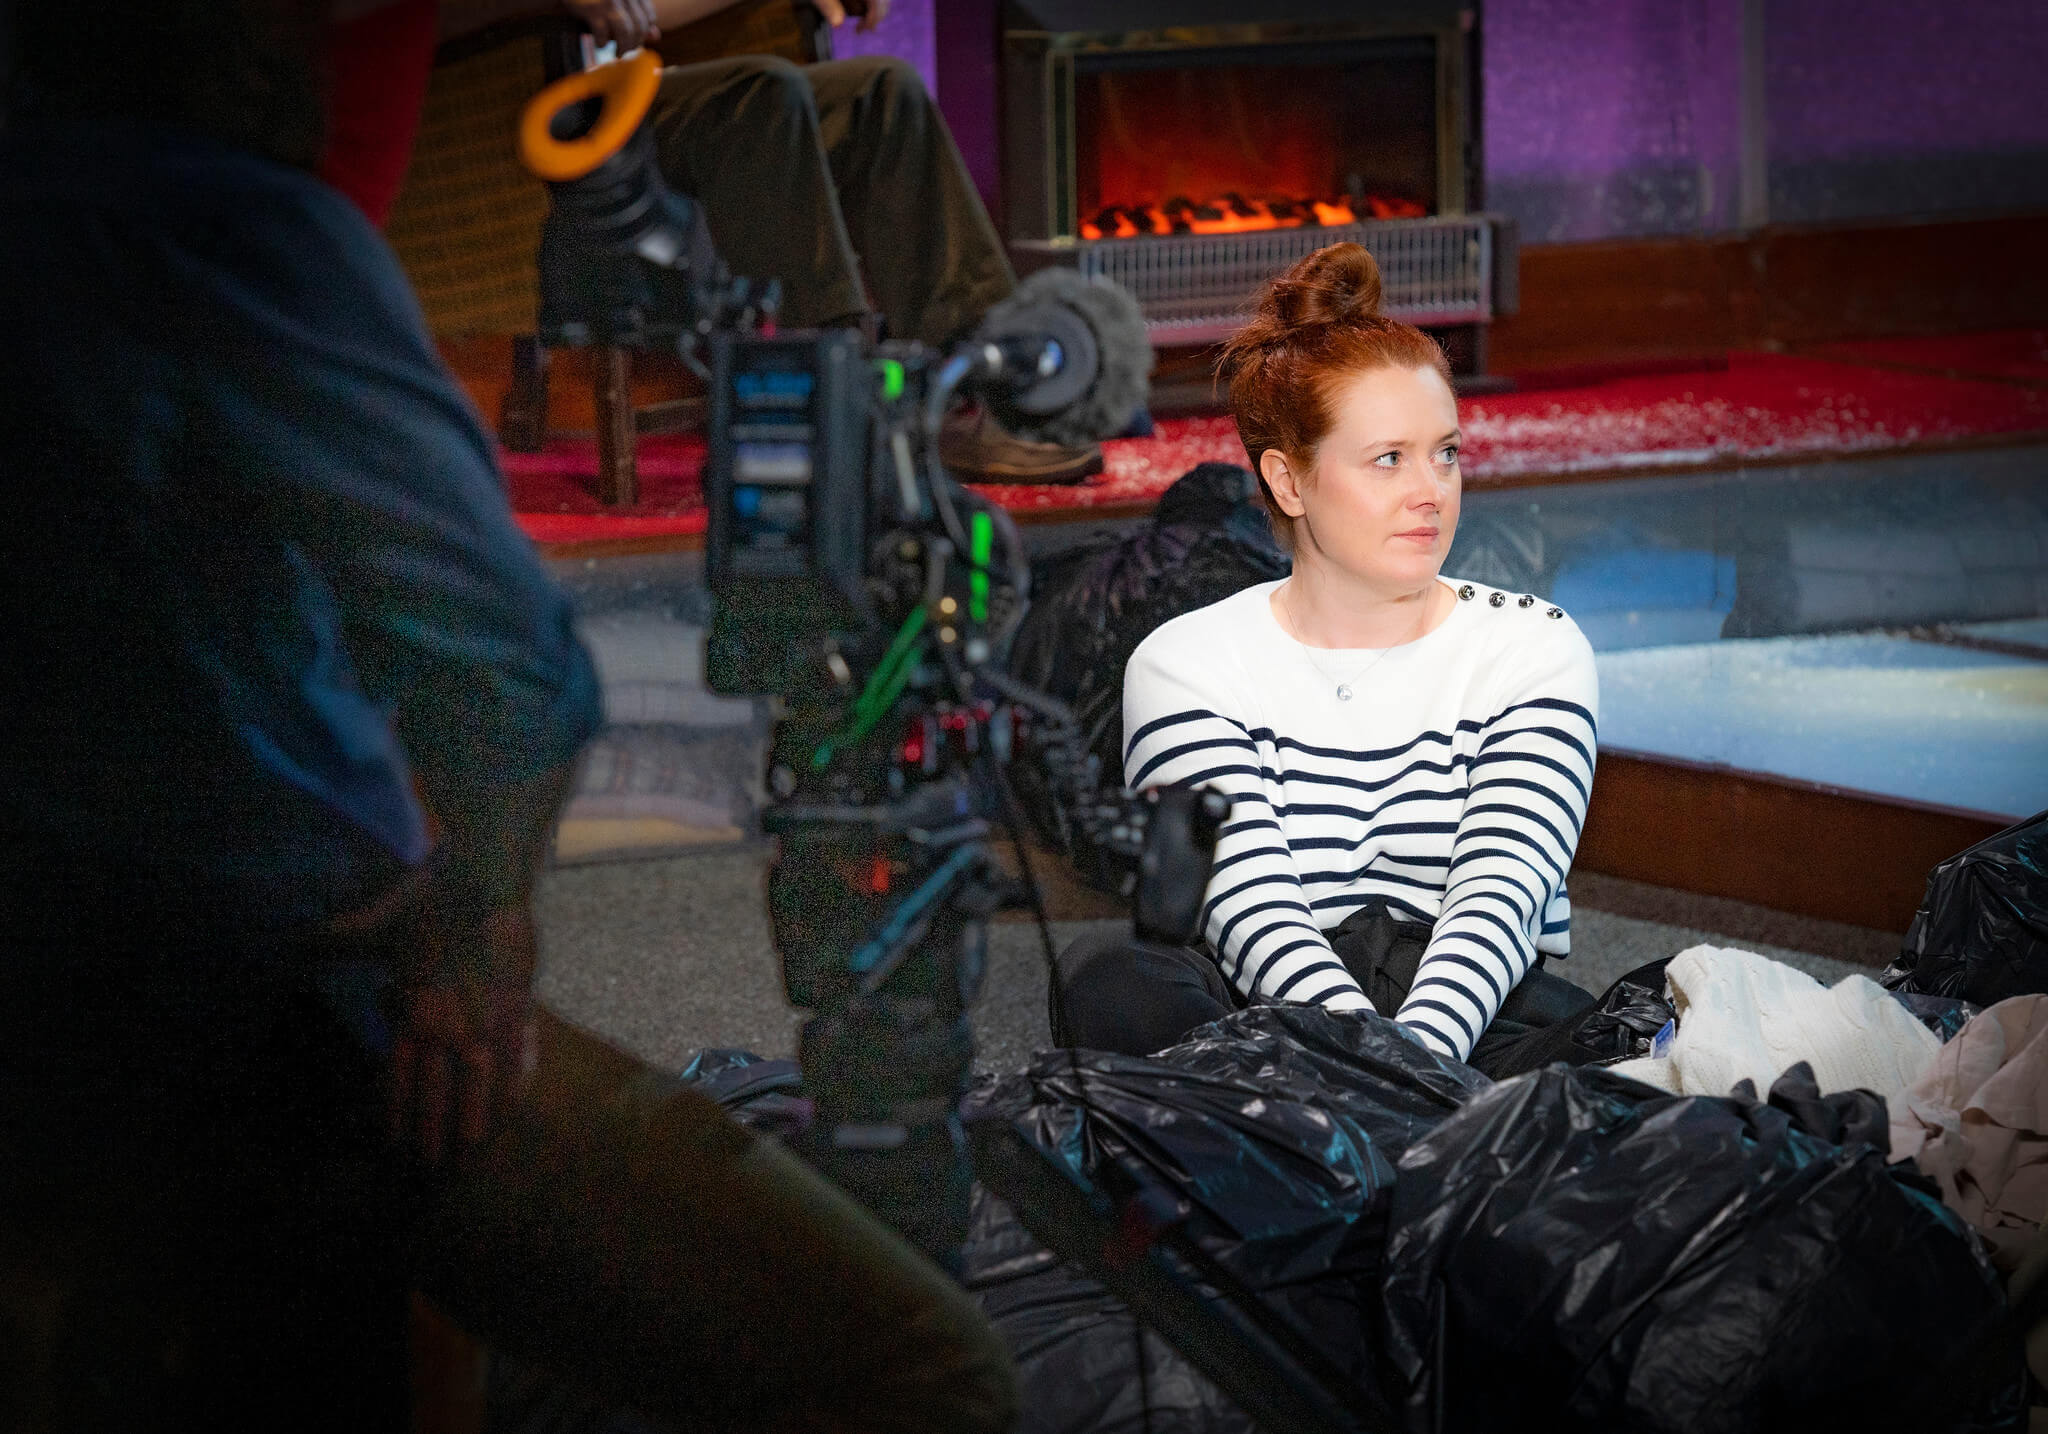 Rehearsal image for Fibres films showing Suzanne Magowan sitting on set and being filmed